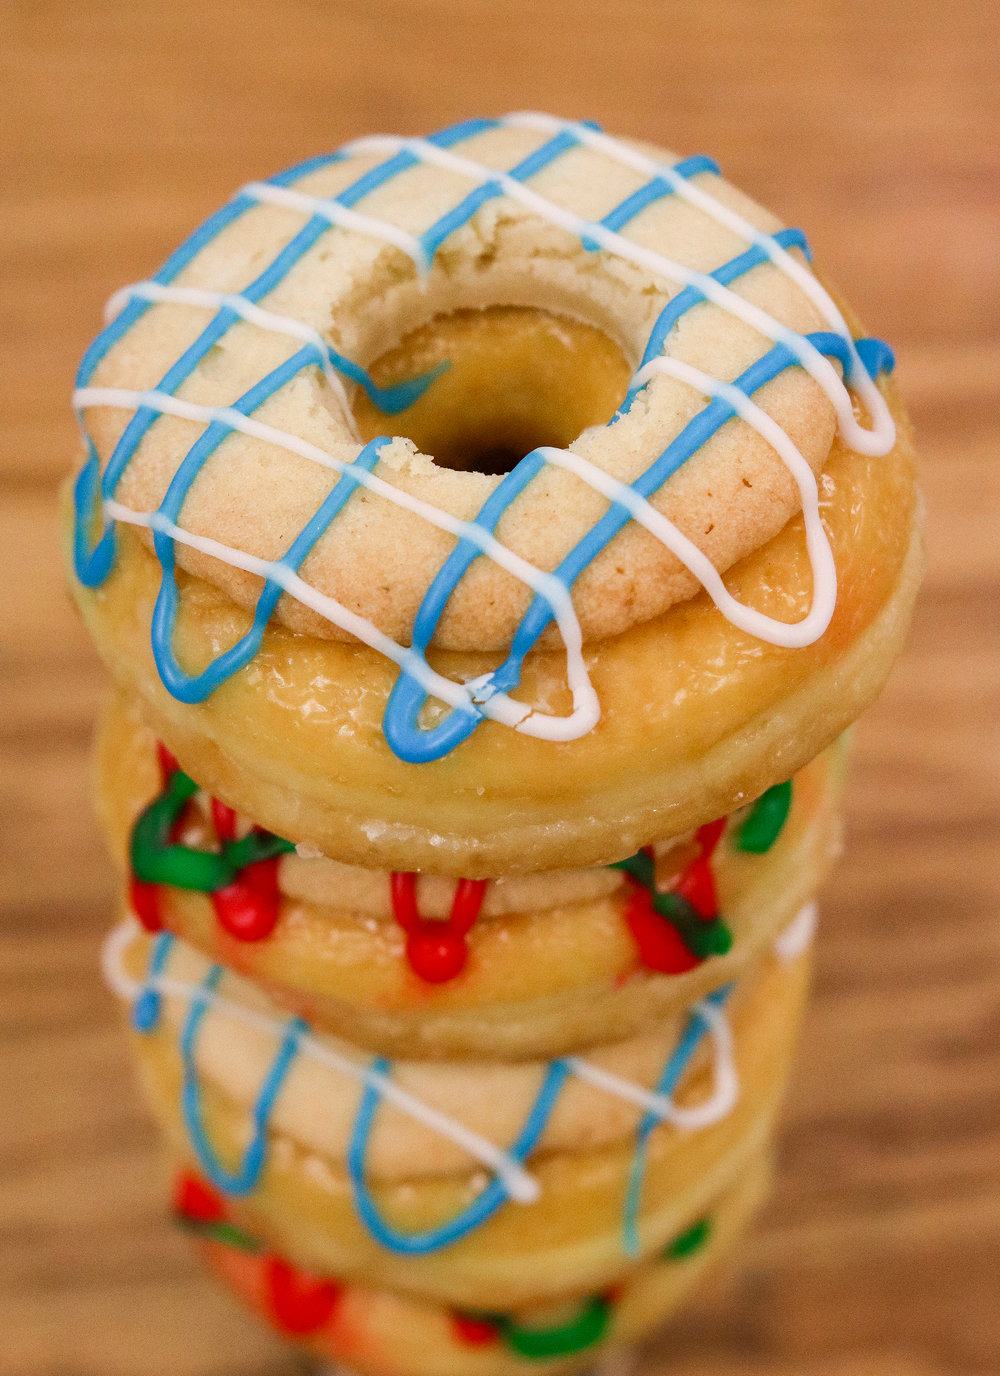 SUGAR COOKIE HALOS - A RAISED GLAZE ADORNED WITH A SUGAR COOKIE, AND USED TO PERFECTION. LEAVE THIS OUT FOR OLE ST. NICK!$2.50 // AVAILABLE AT 11AM